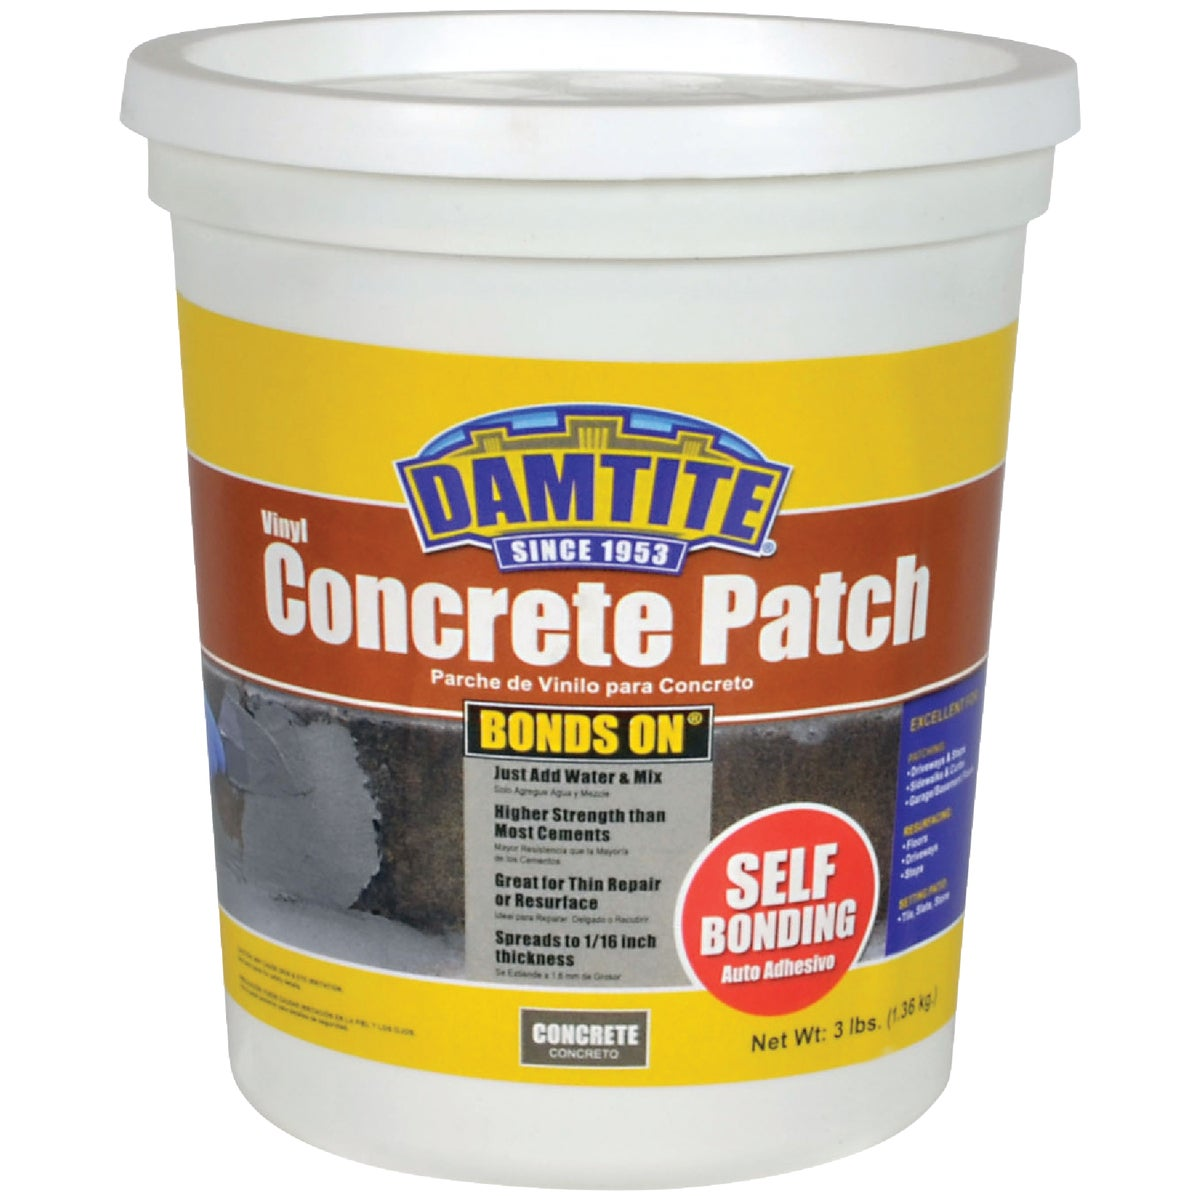 Thoro Consumer Products 3LB THOROCRETE PATCH T5022